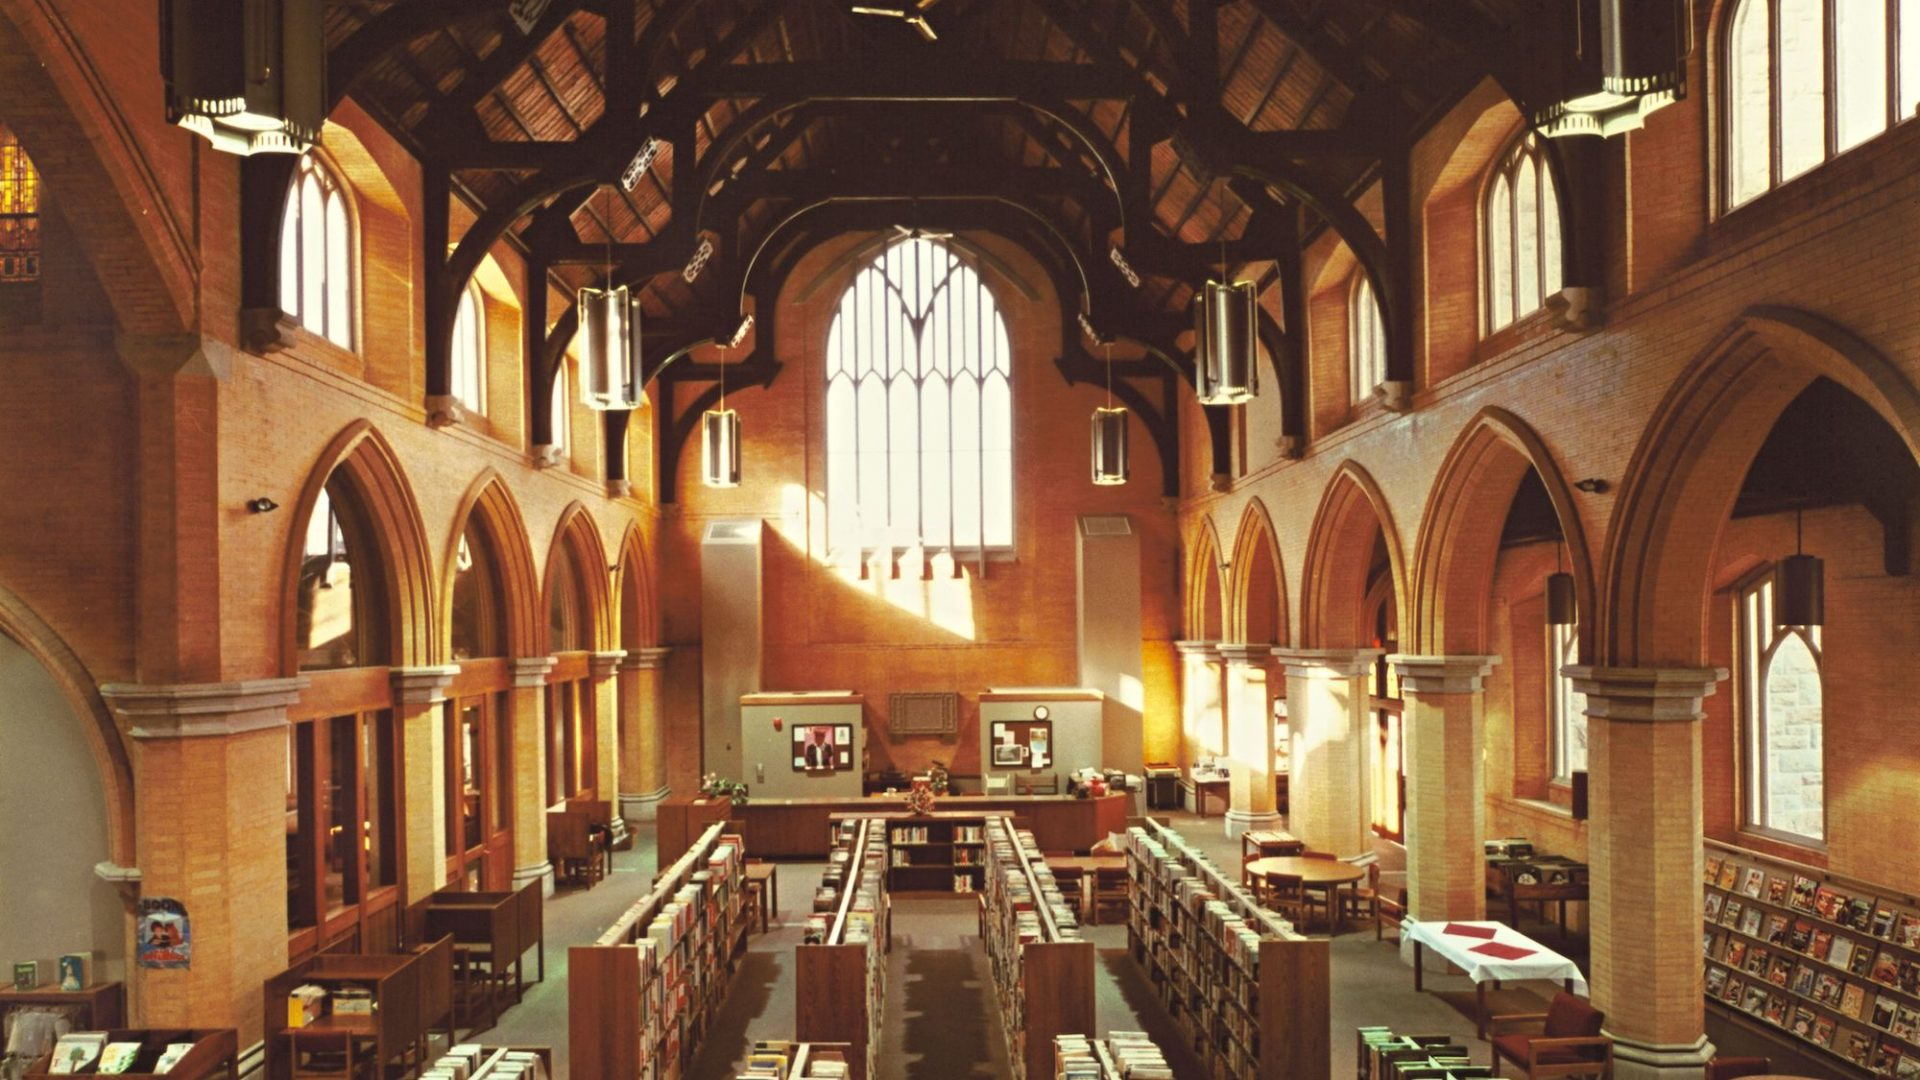 Cohoes Public Library Interior